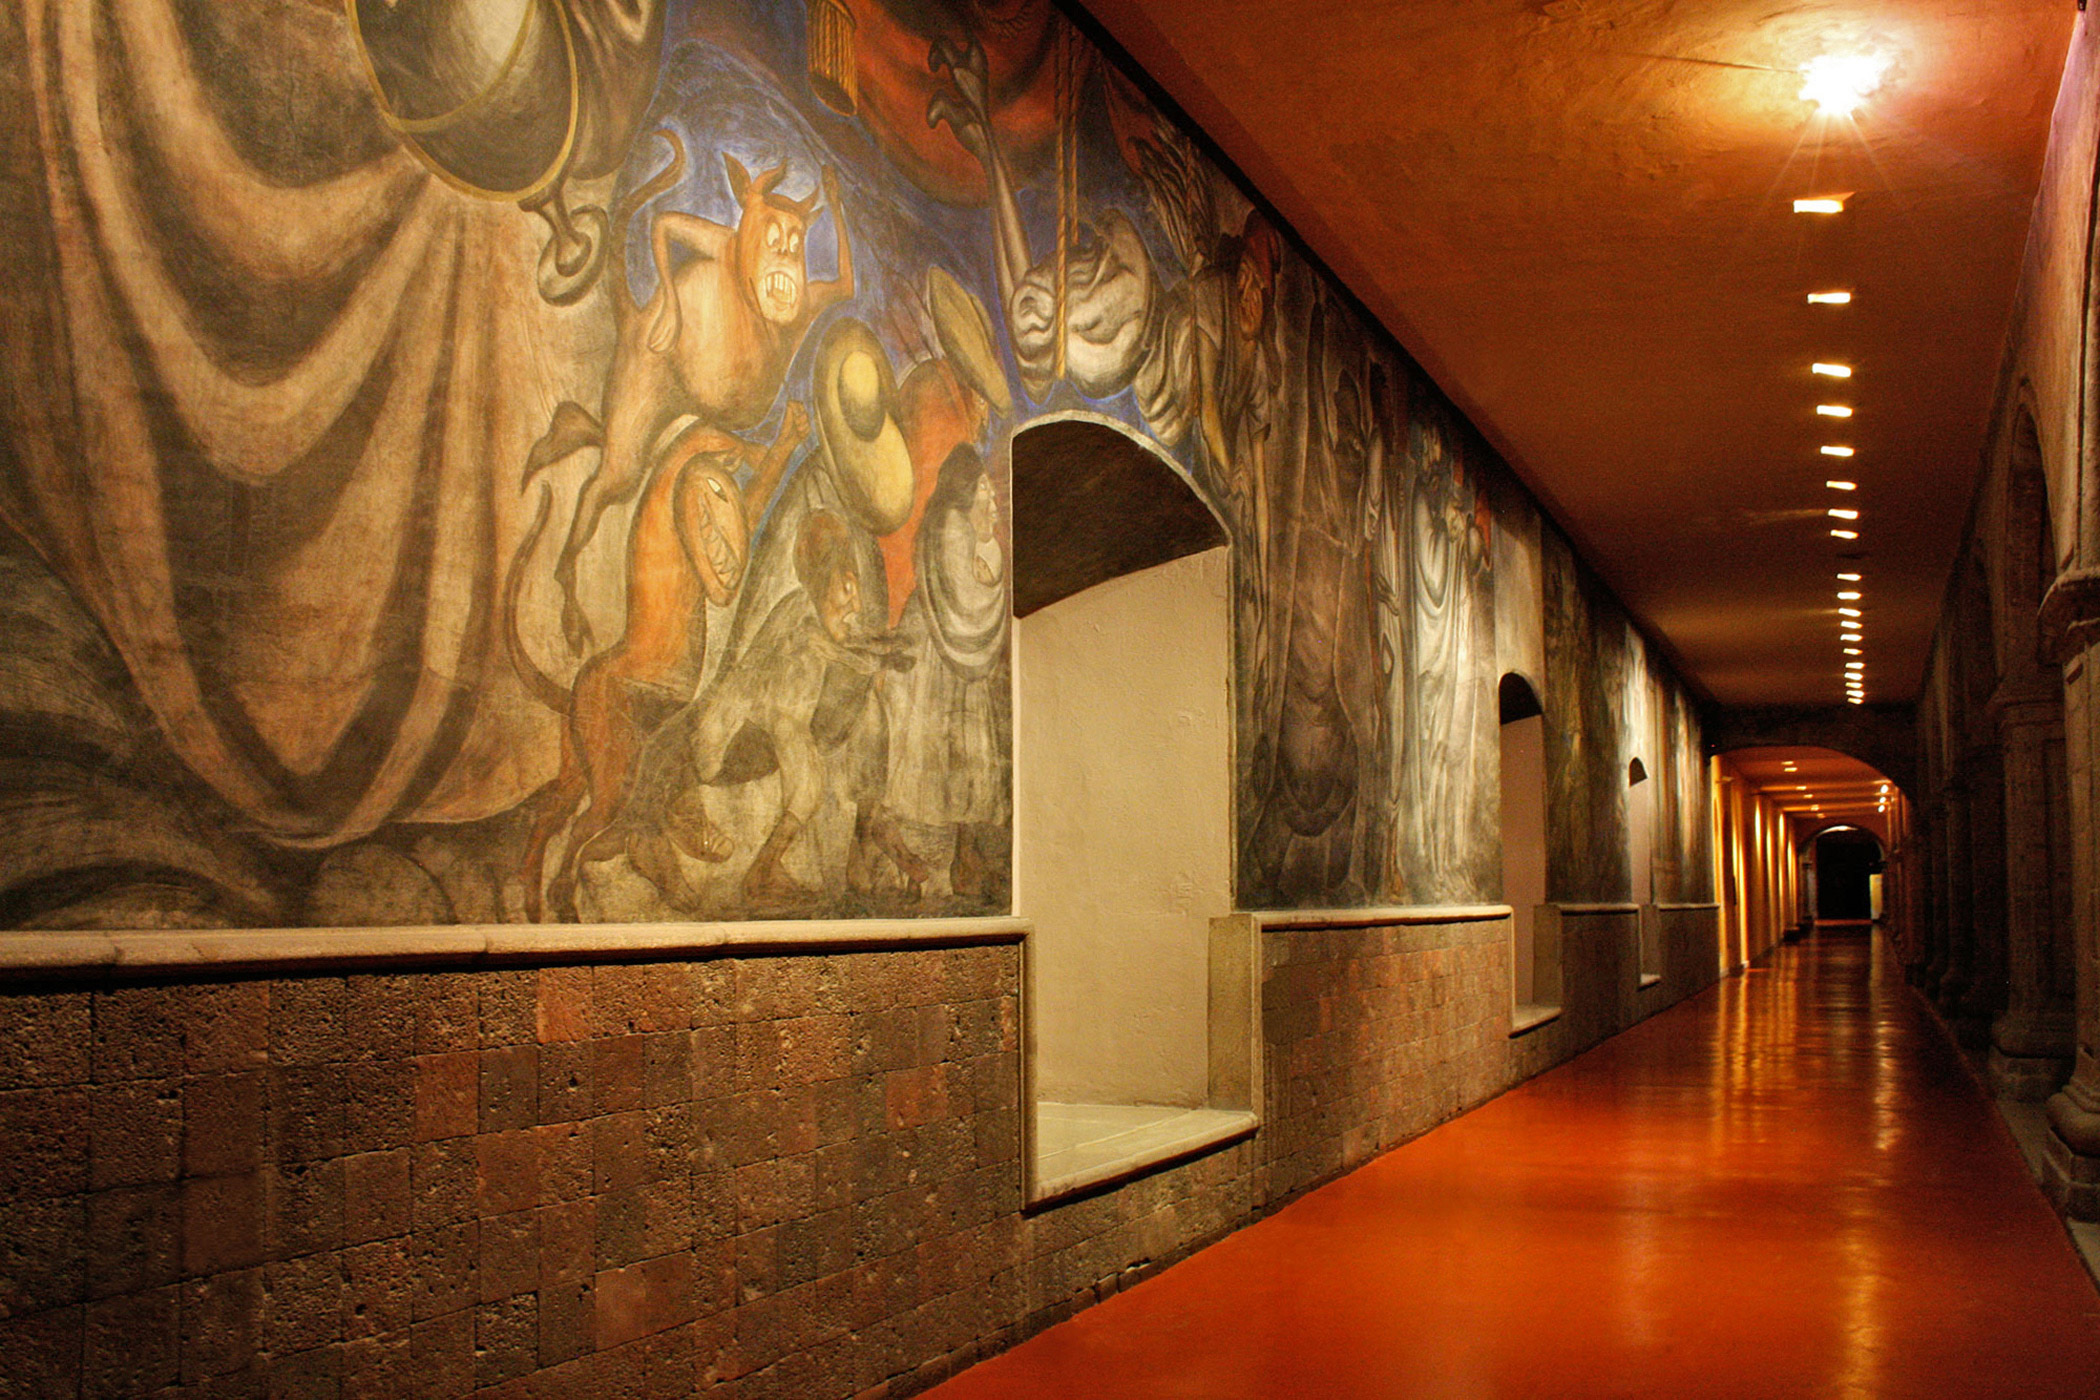 Mexico, Antiguo                               Colegio de San                               Ildefonso: A former Jesuit college that became the cradle of the Mexican muralist movement, is laden with outdated systems that hinder its function as a world-class exhibition space.